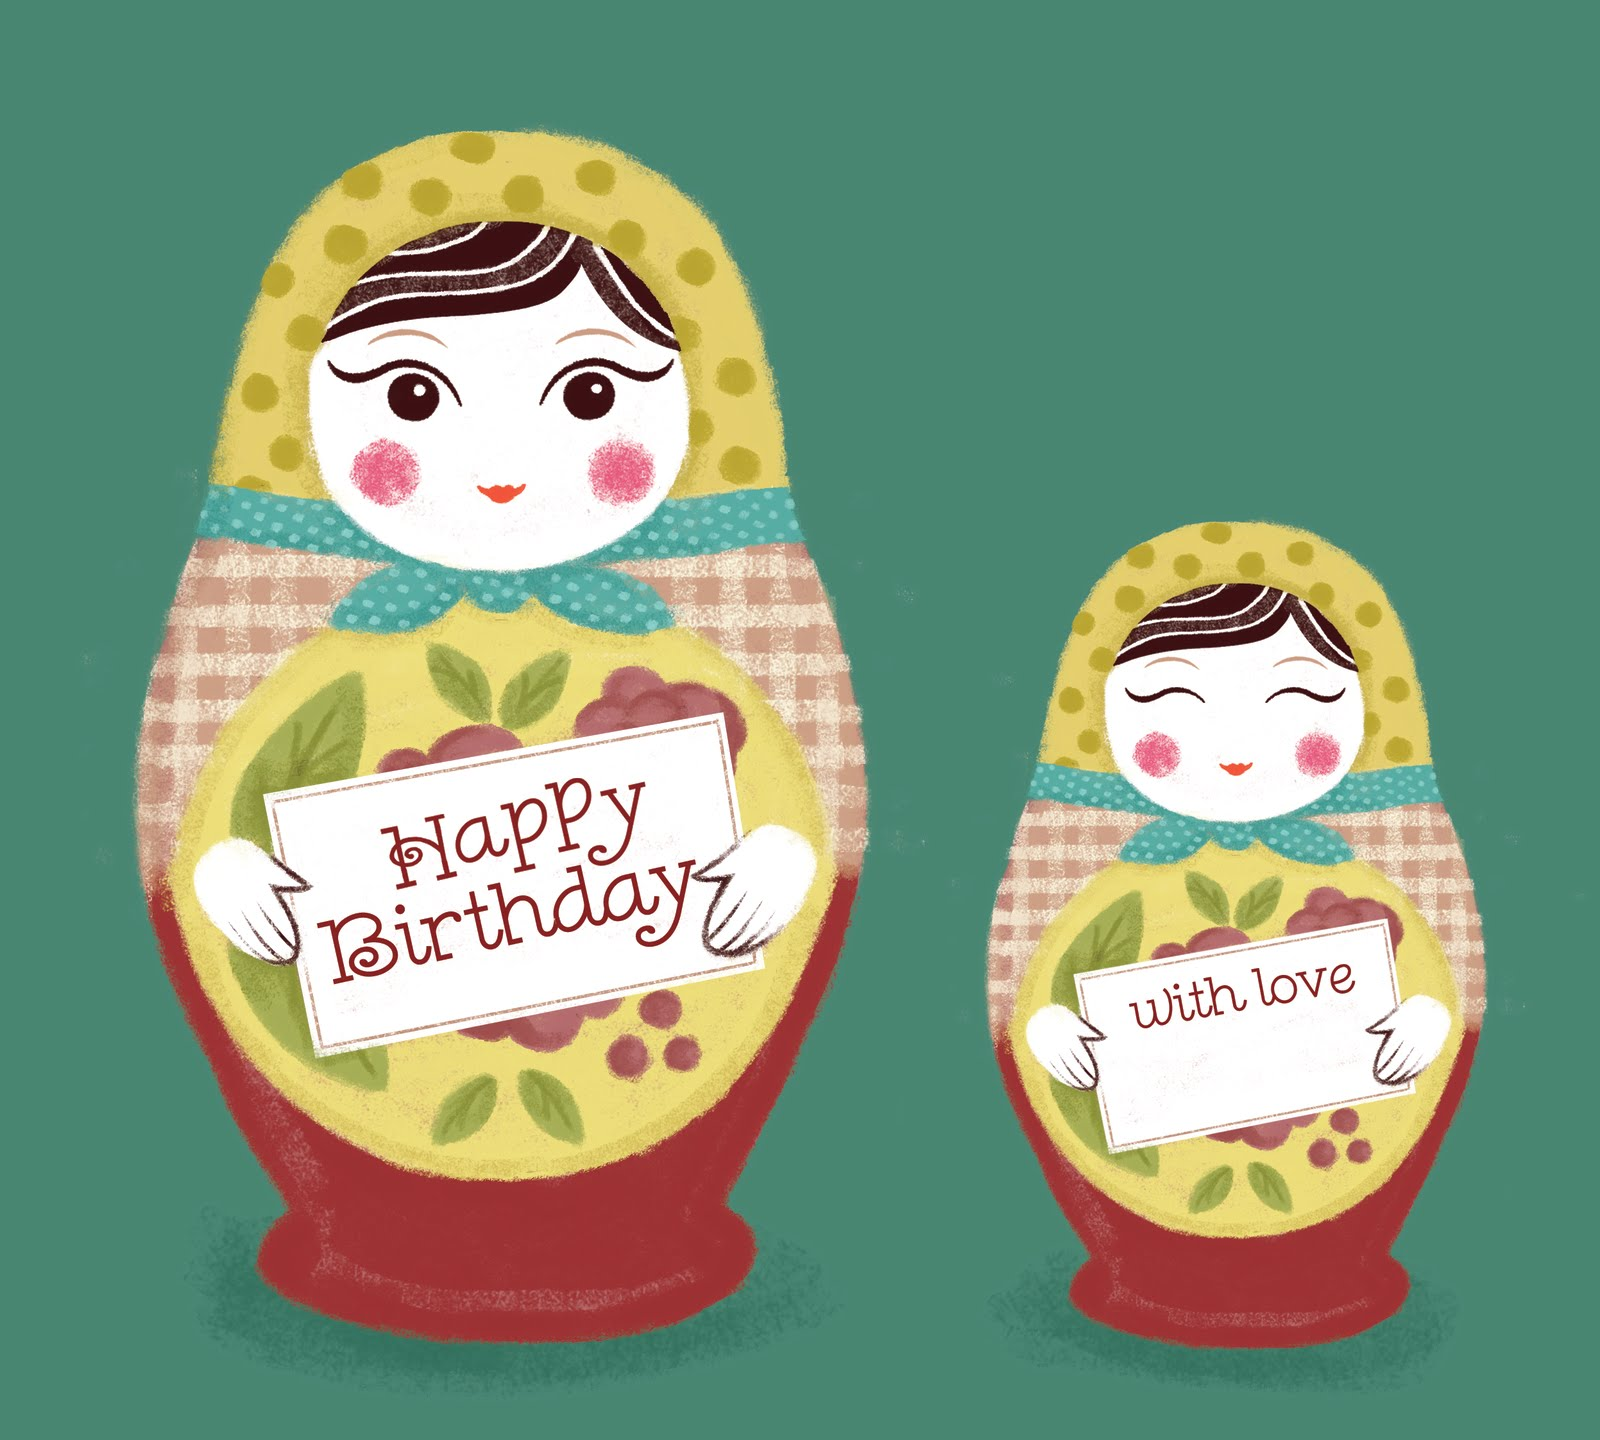 They are a bit different to your average russian doll card design